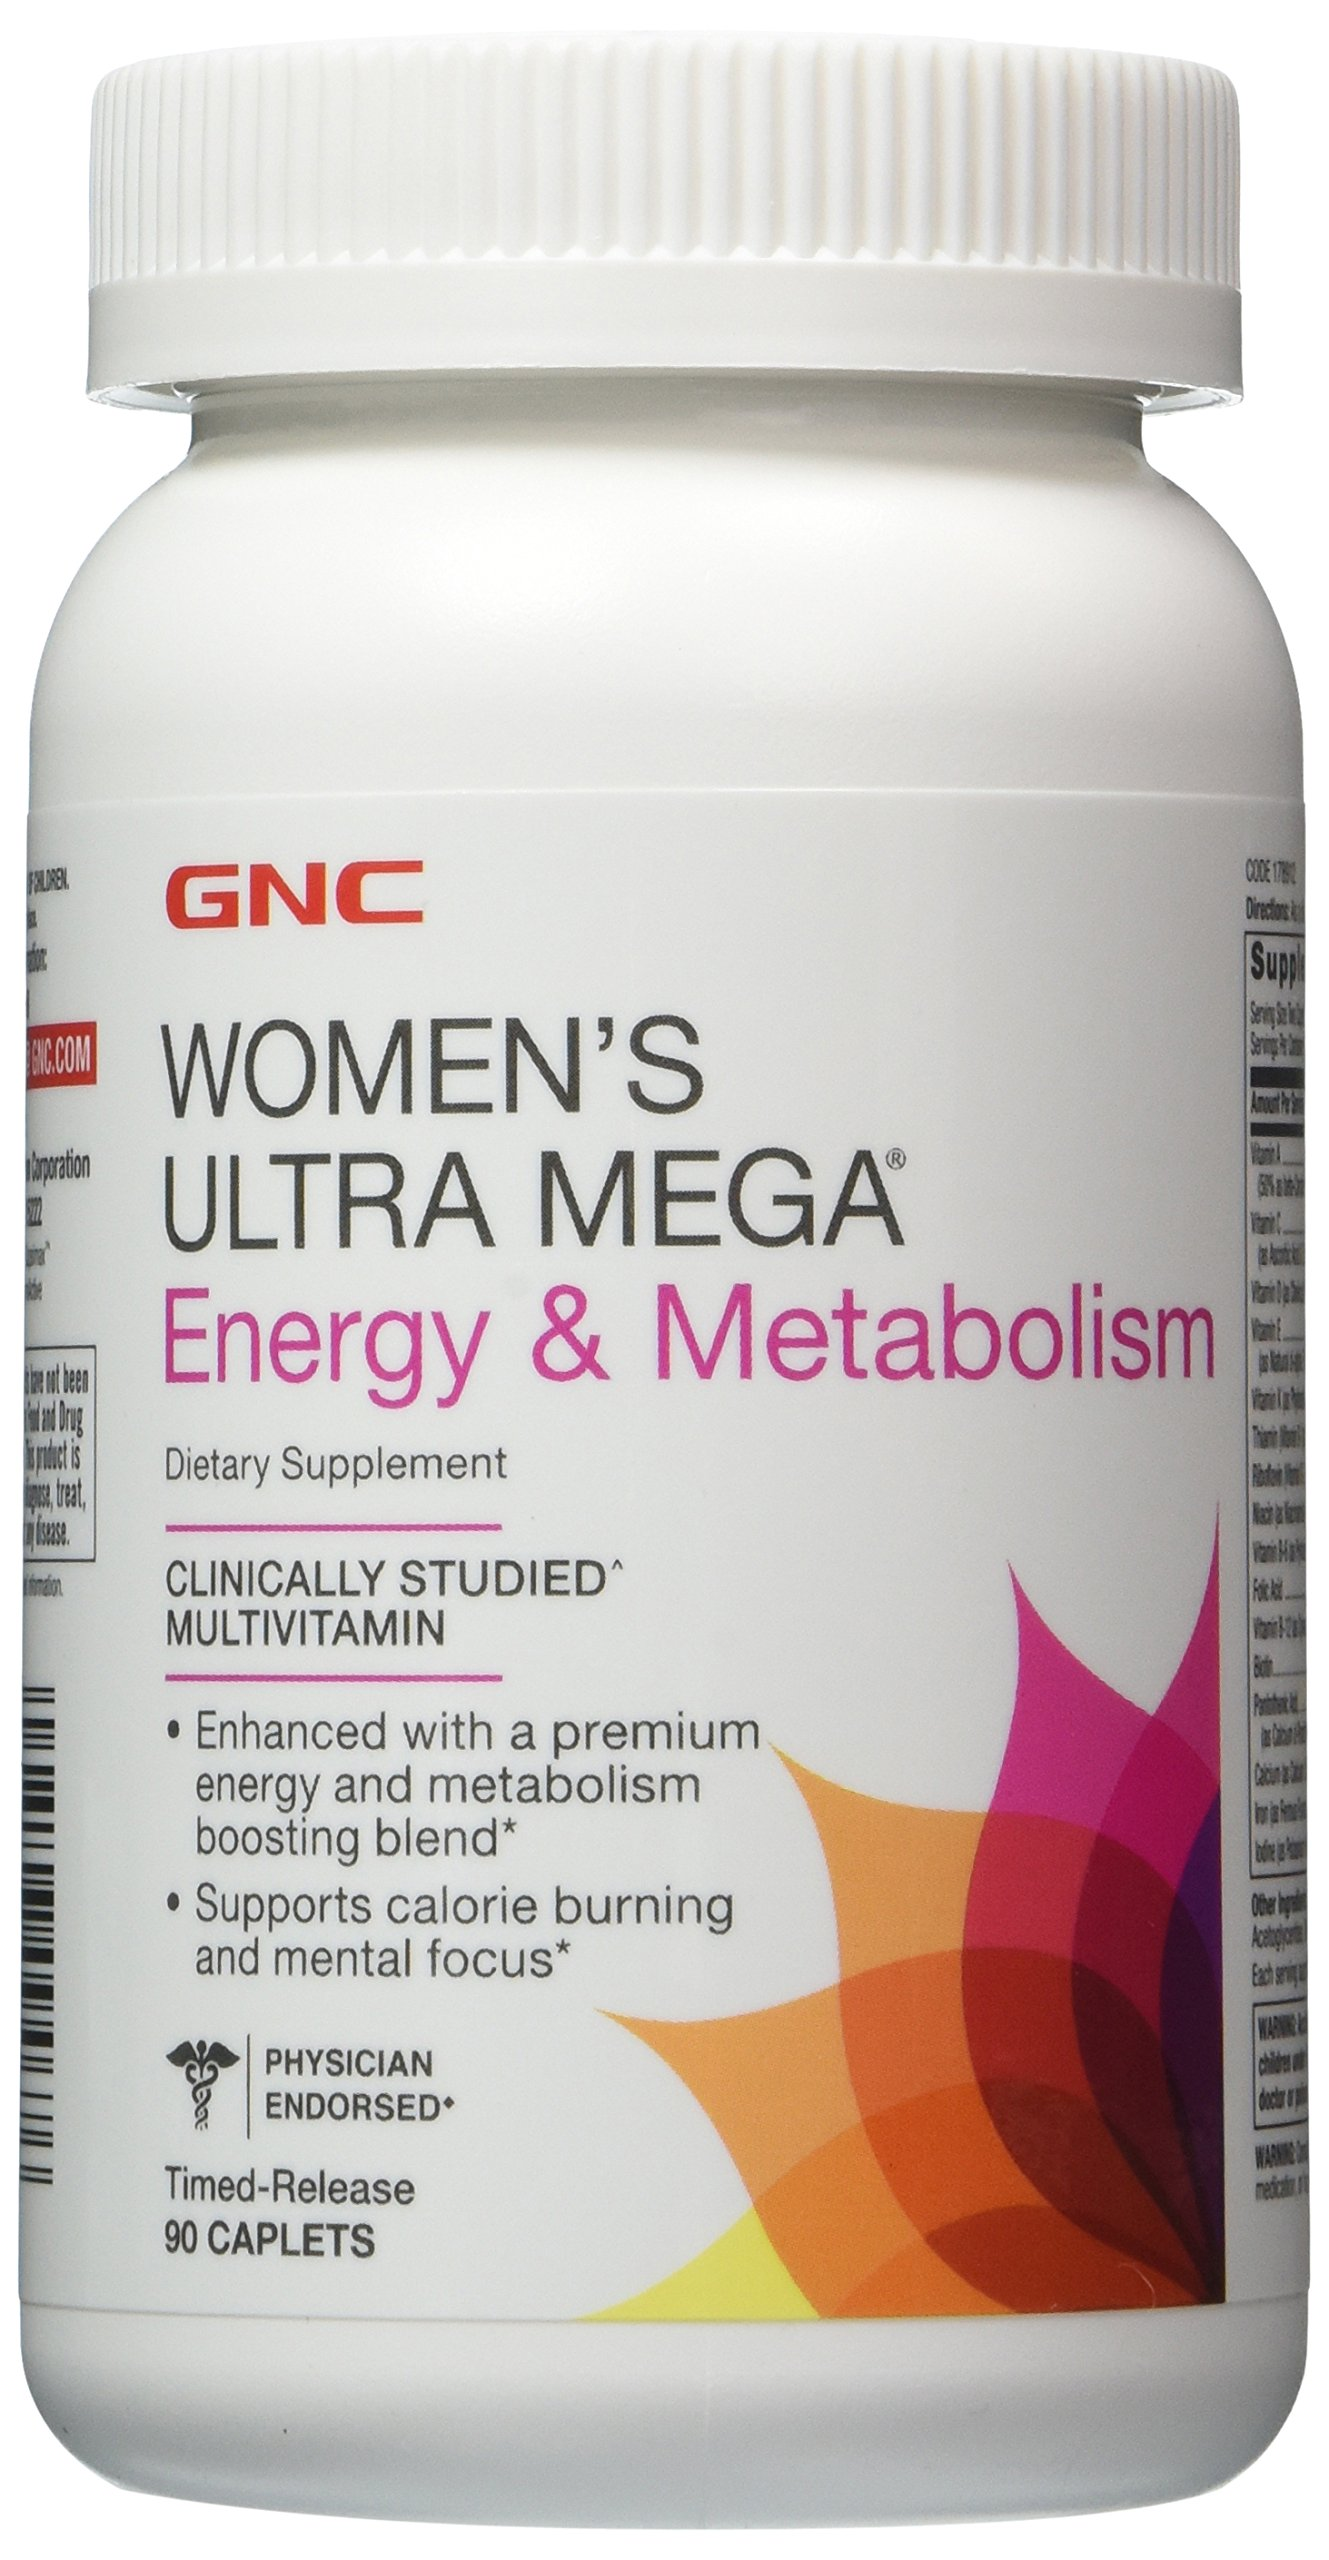 GNC Women's Ultra Mega Energy and Metabolism 90 Caplets Pack of 2. Total 180 Caplets.